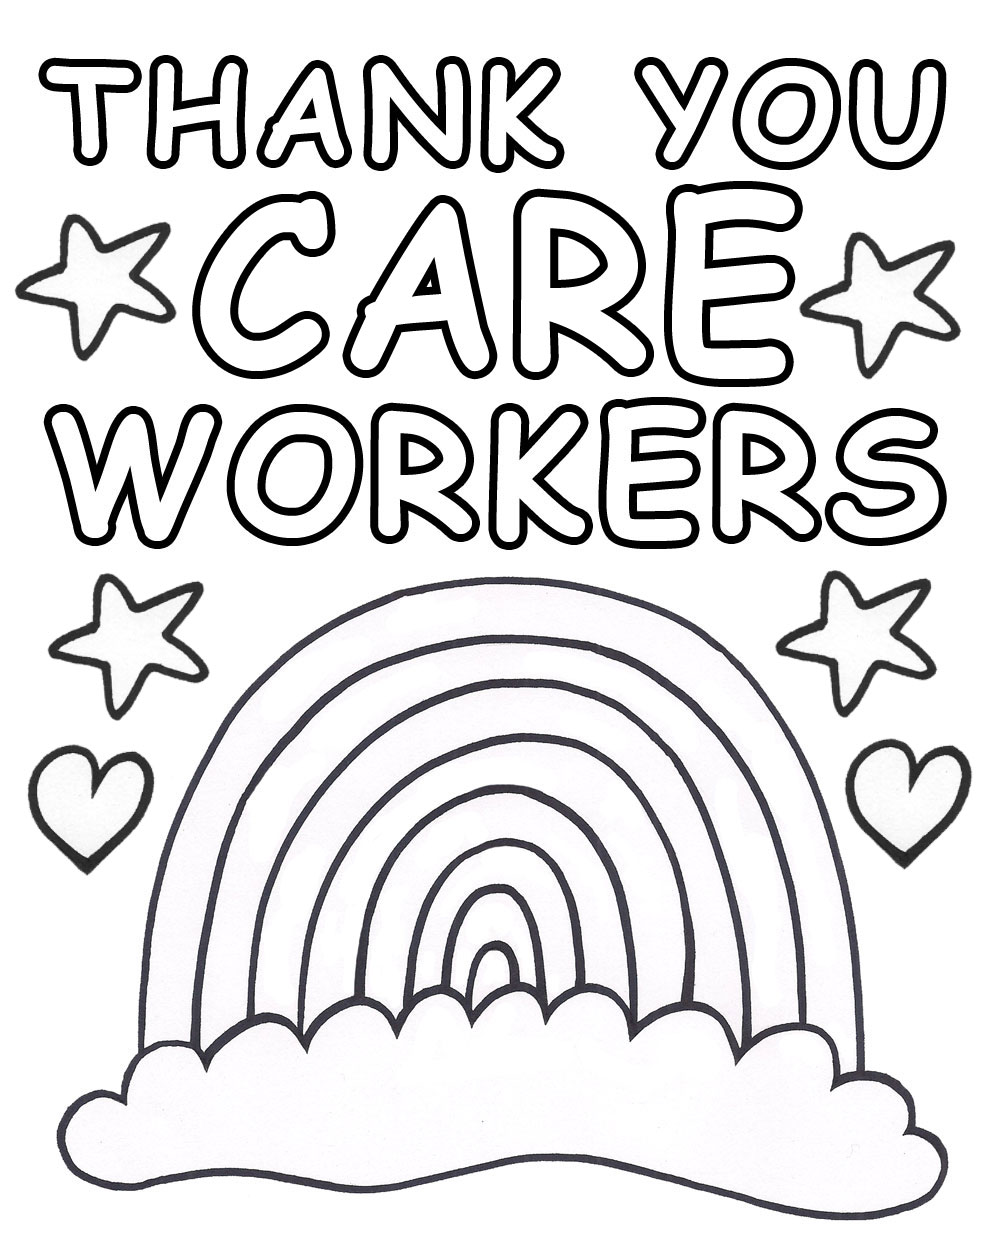 This is a poster for children to colour in to say thank you to care workers